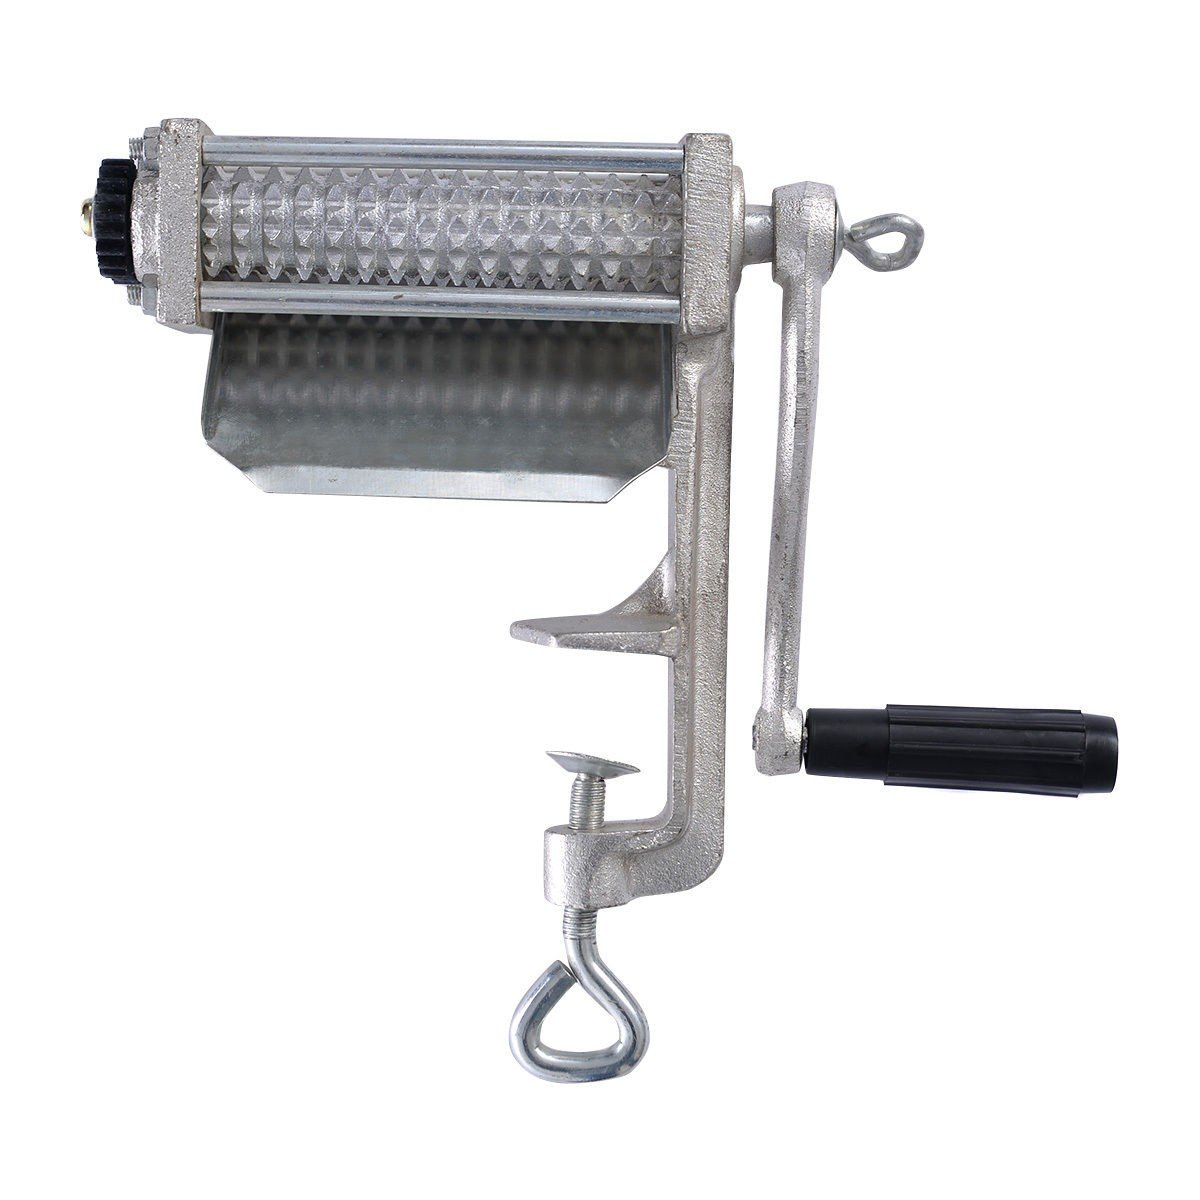 Heavy Duty Meat Tenderizer Cuber meat cutting machine pounder for jerky meats bread USA_BEST_SELLER